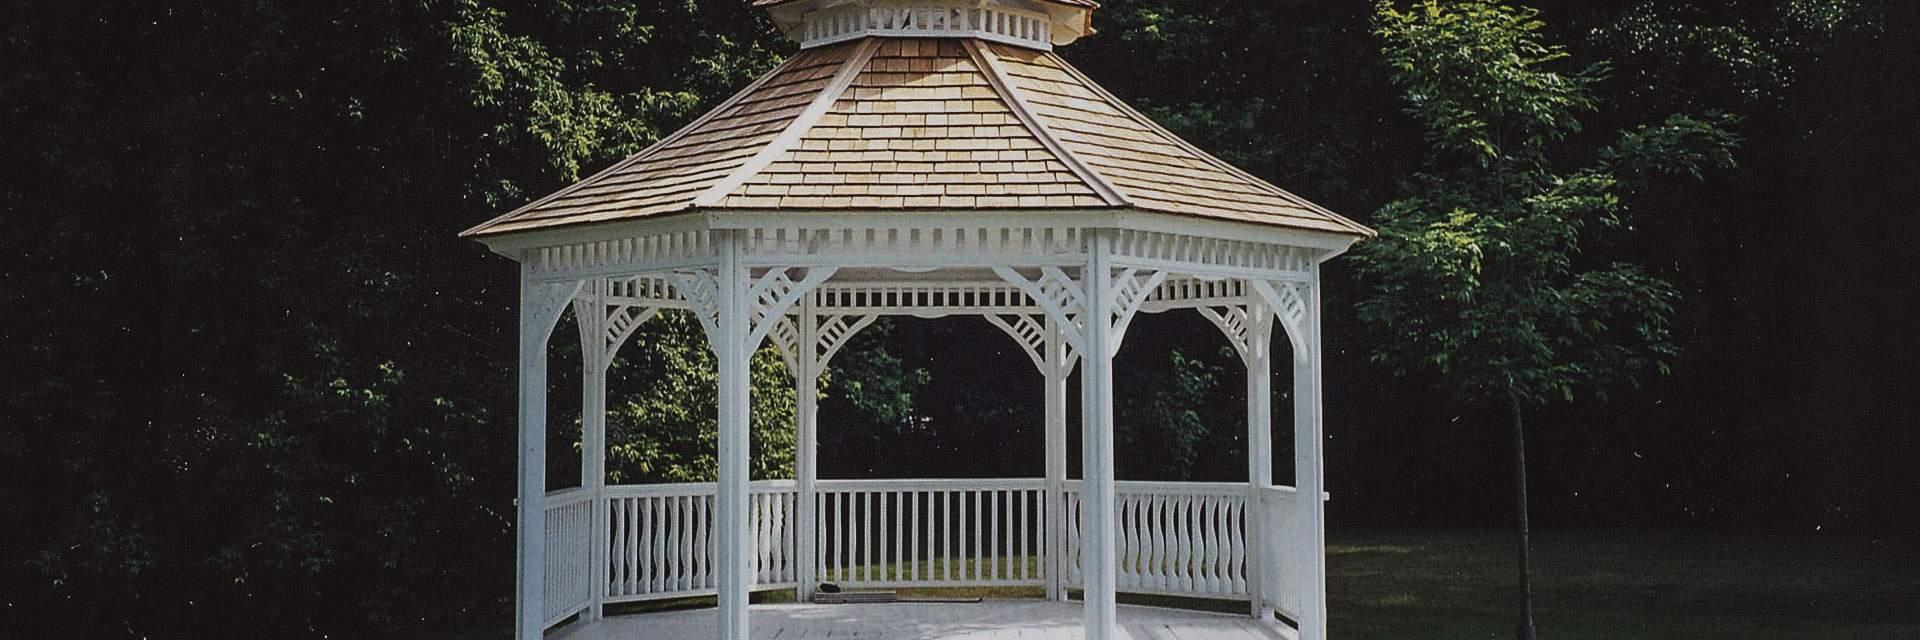 Summerwood Gazebos beauty shot Summerwood ID 387